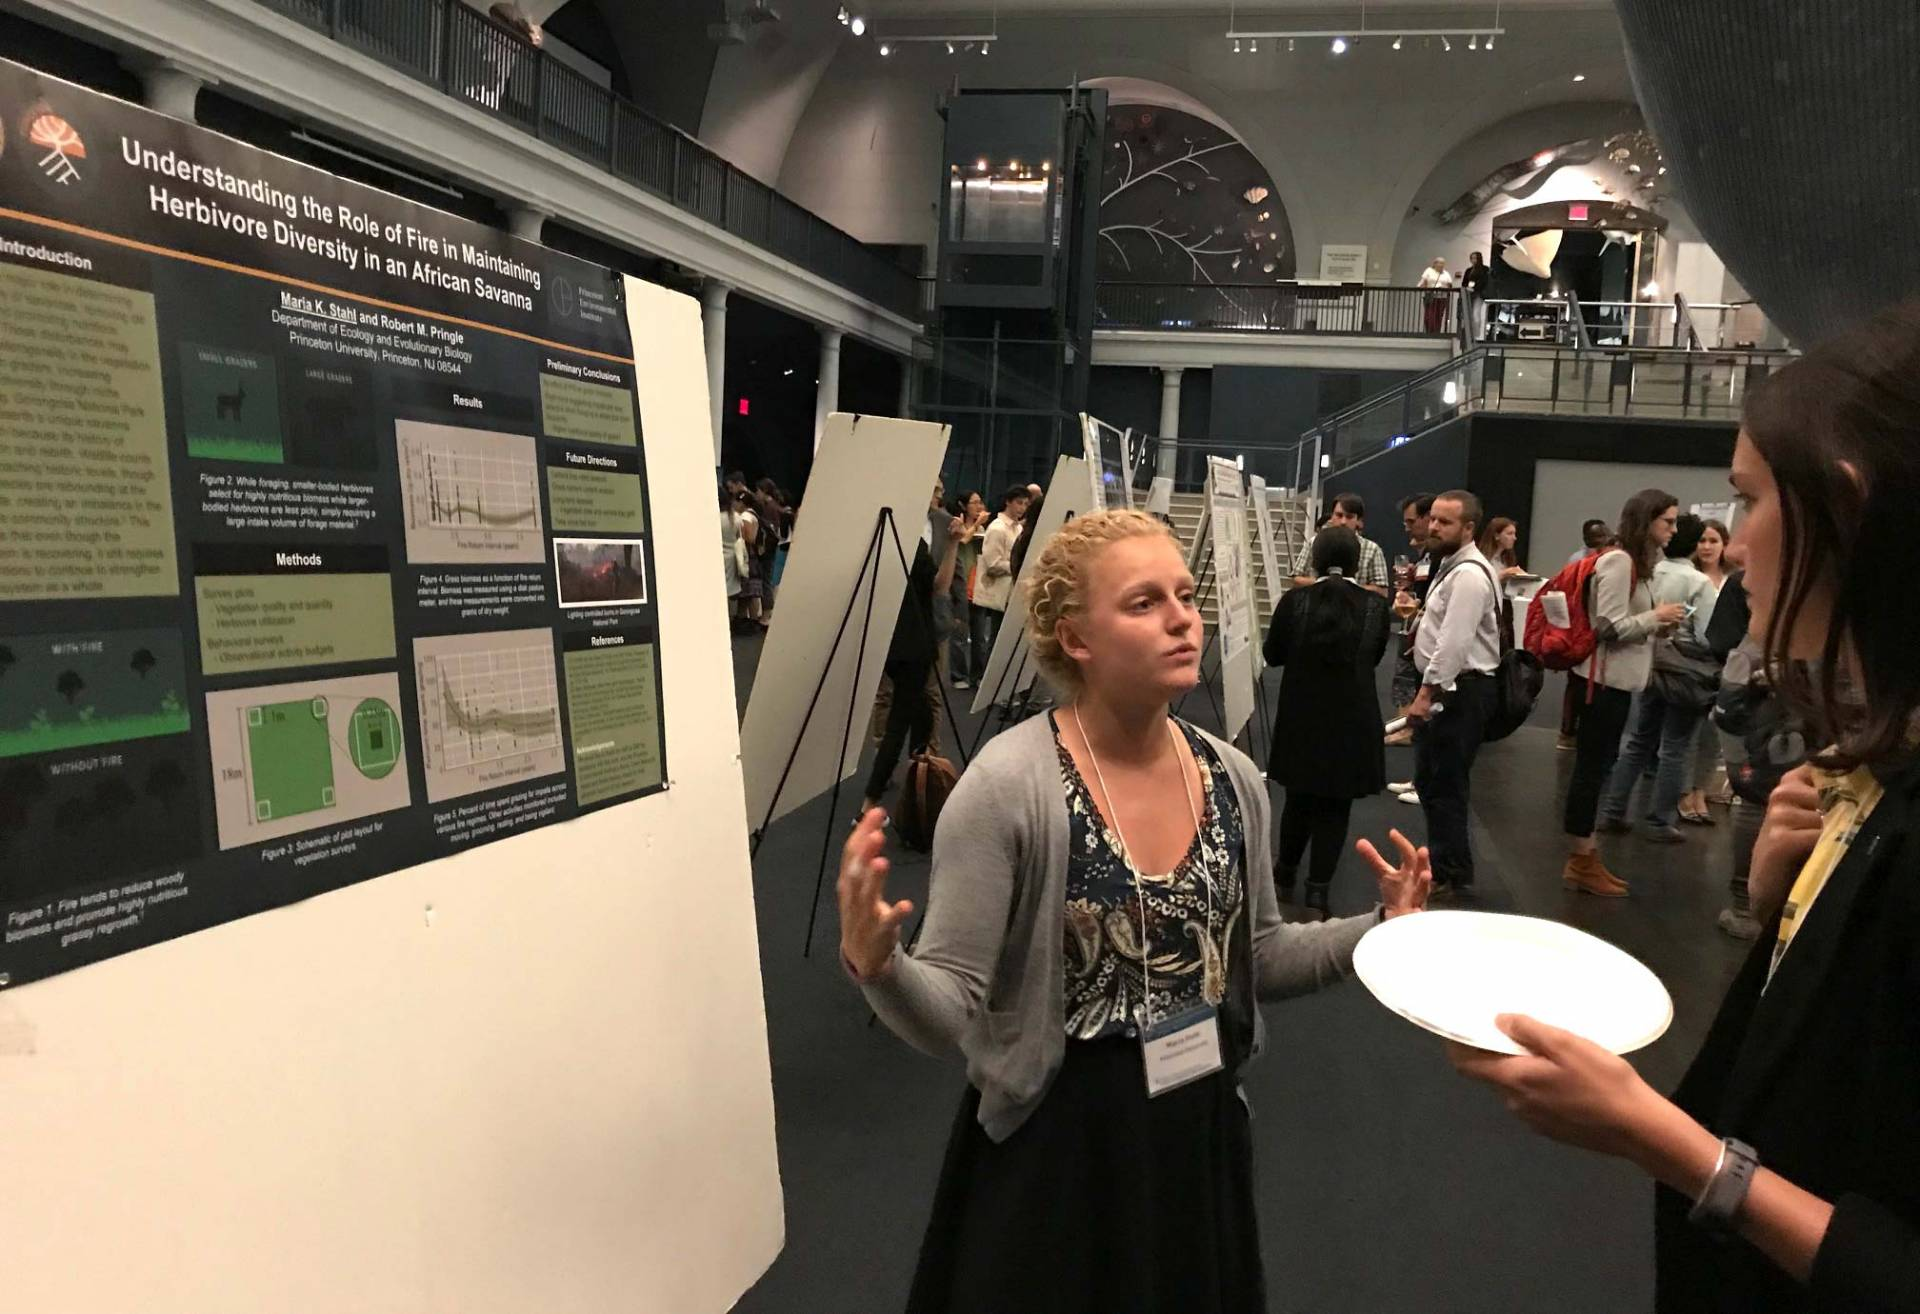 Stahl presents her research in front of her poster